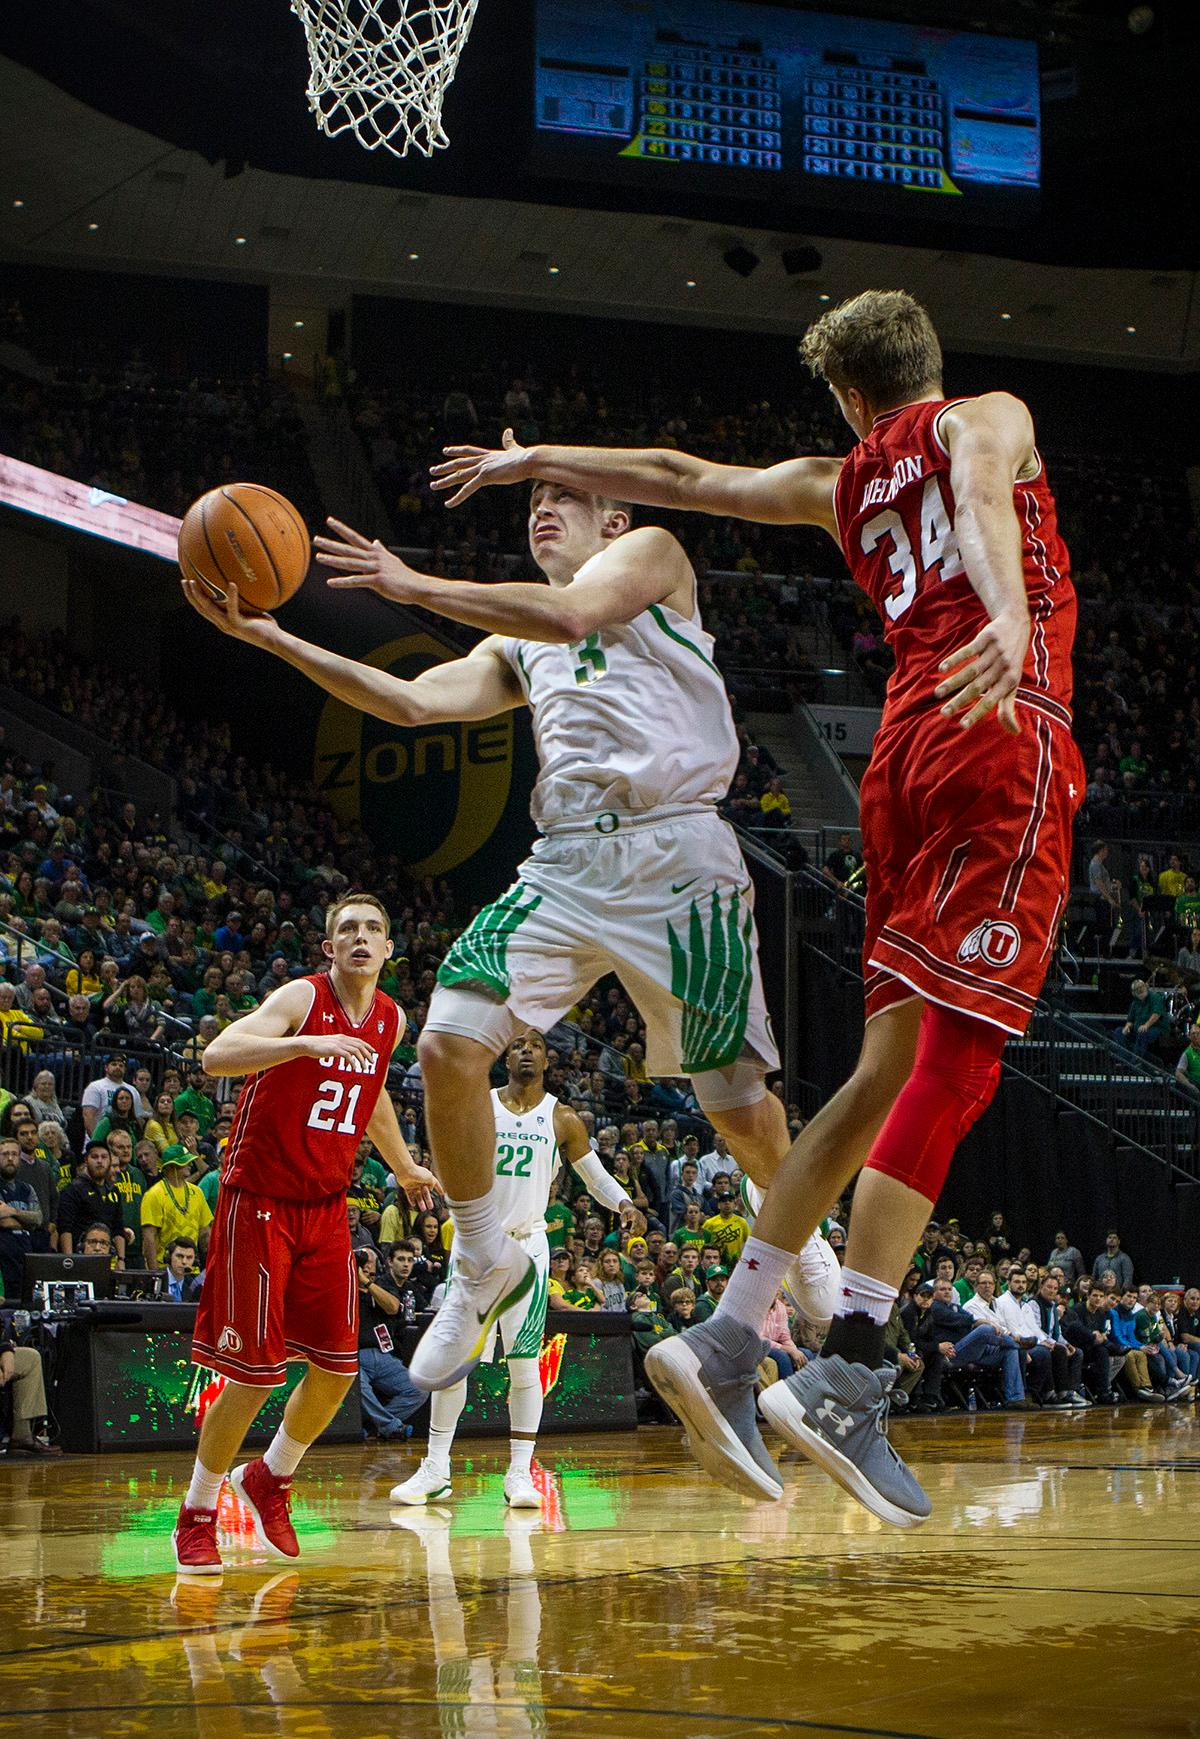 Oregon Ducks Payton Pritchard (#3) makes a drive to the basket during the second half of the game against Utah on Friday night. The Utah Utes defeated the Oregon Ducks 66-56 on Friday night at Matthew Knight Arena. This is the first Pac-12 conference game loss at home for the Ducks since January of 2015. This also ended the five home game winning streak for the Ducks against the Utah Utes. Photo by Rhianna Gelhart, Oregon News Lab